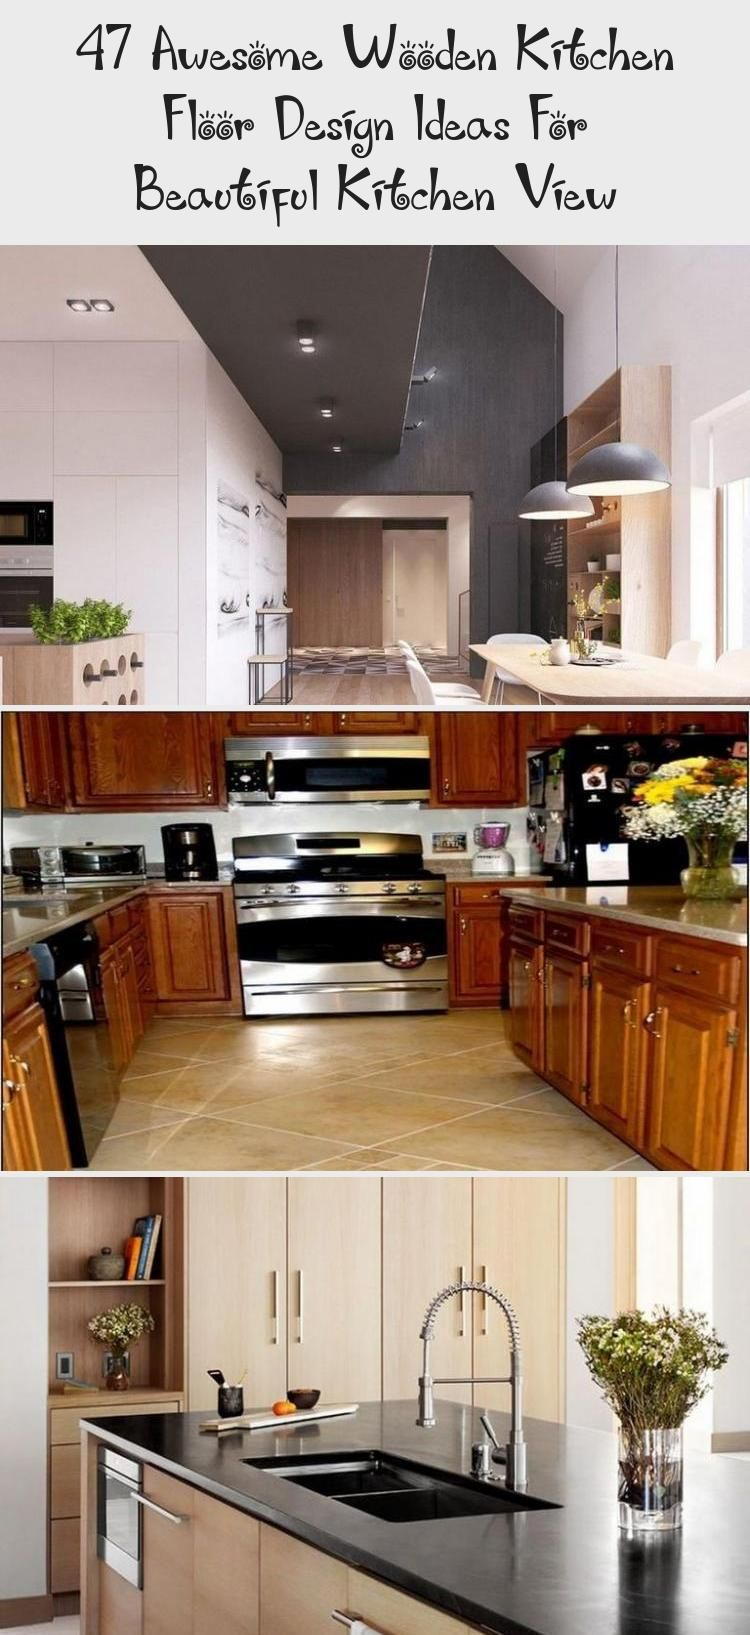 47 Awesome Wooden Kitchen Floor Design Ideas For Beautiful Kitchen